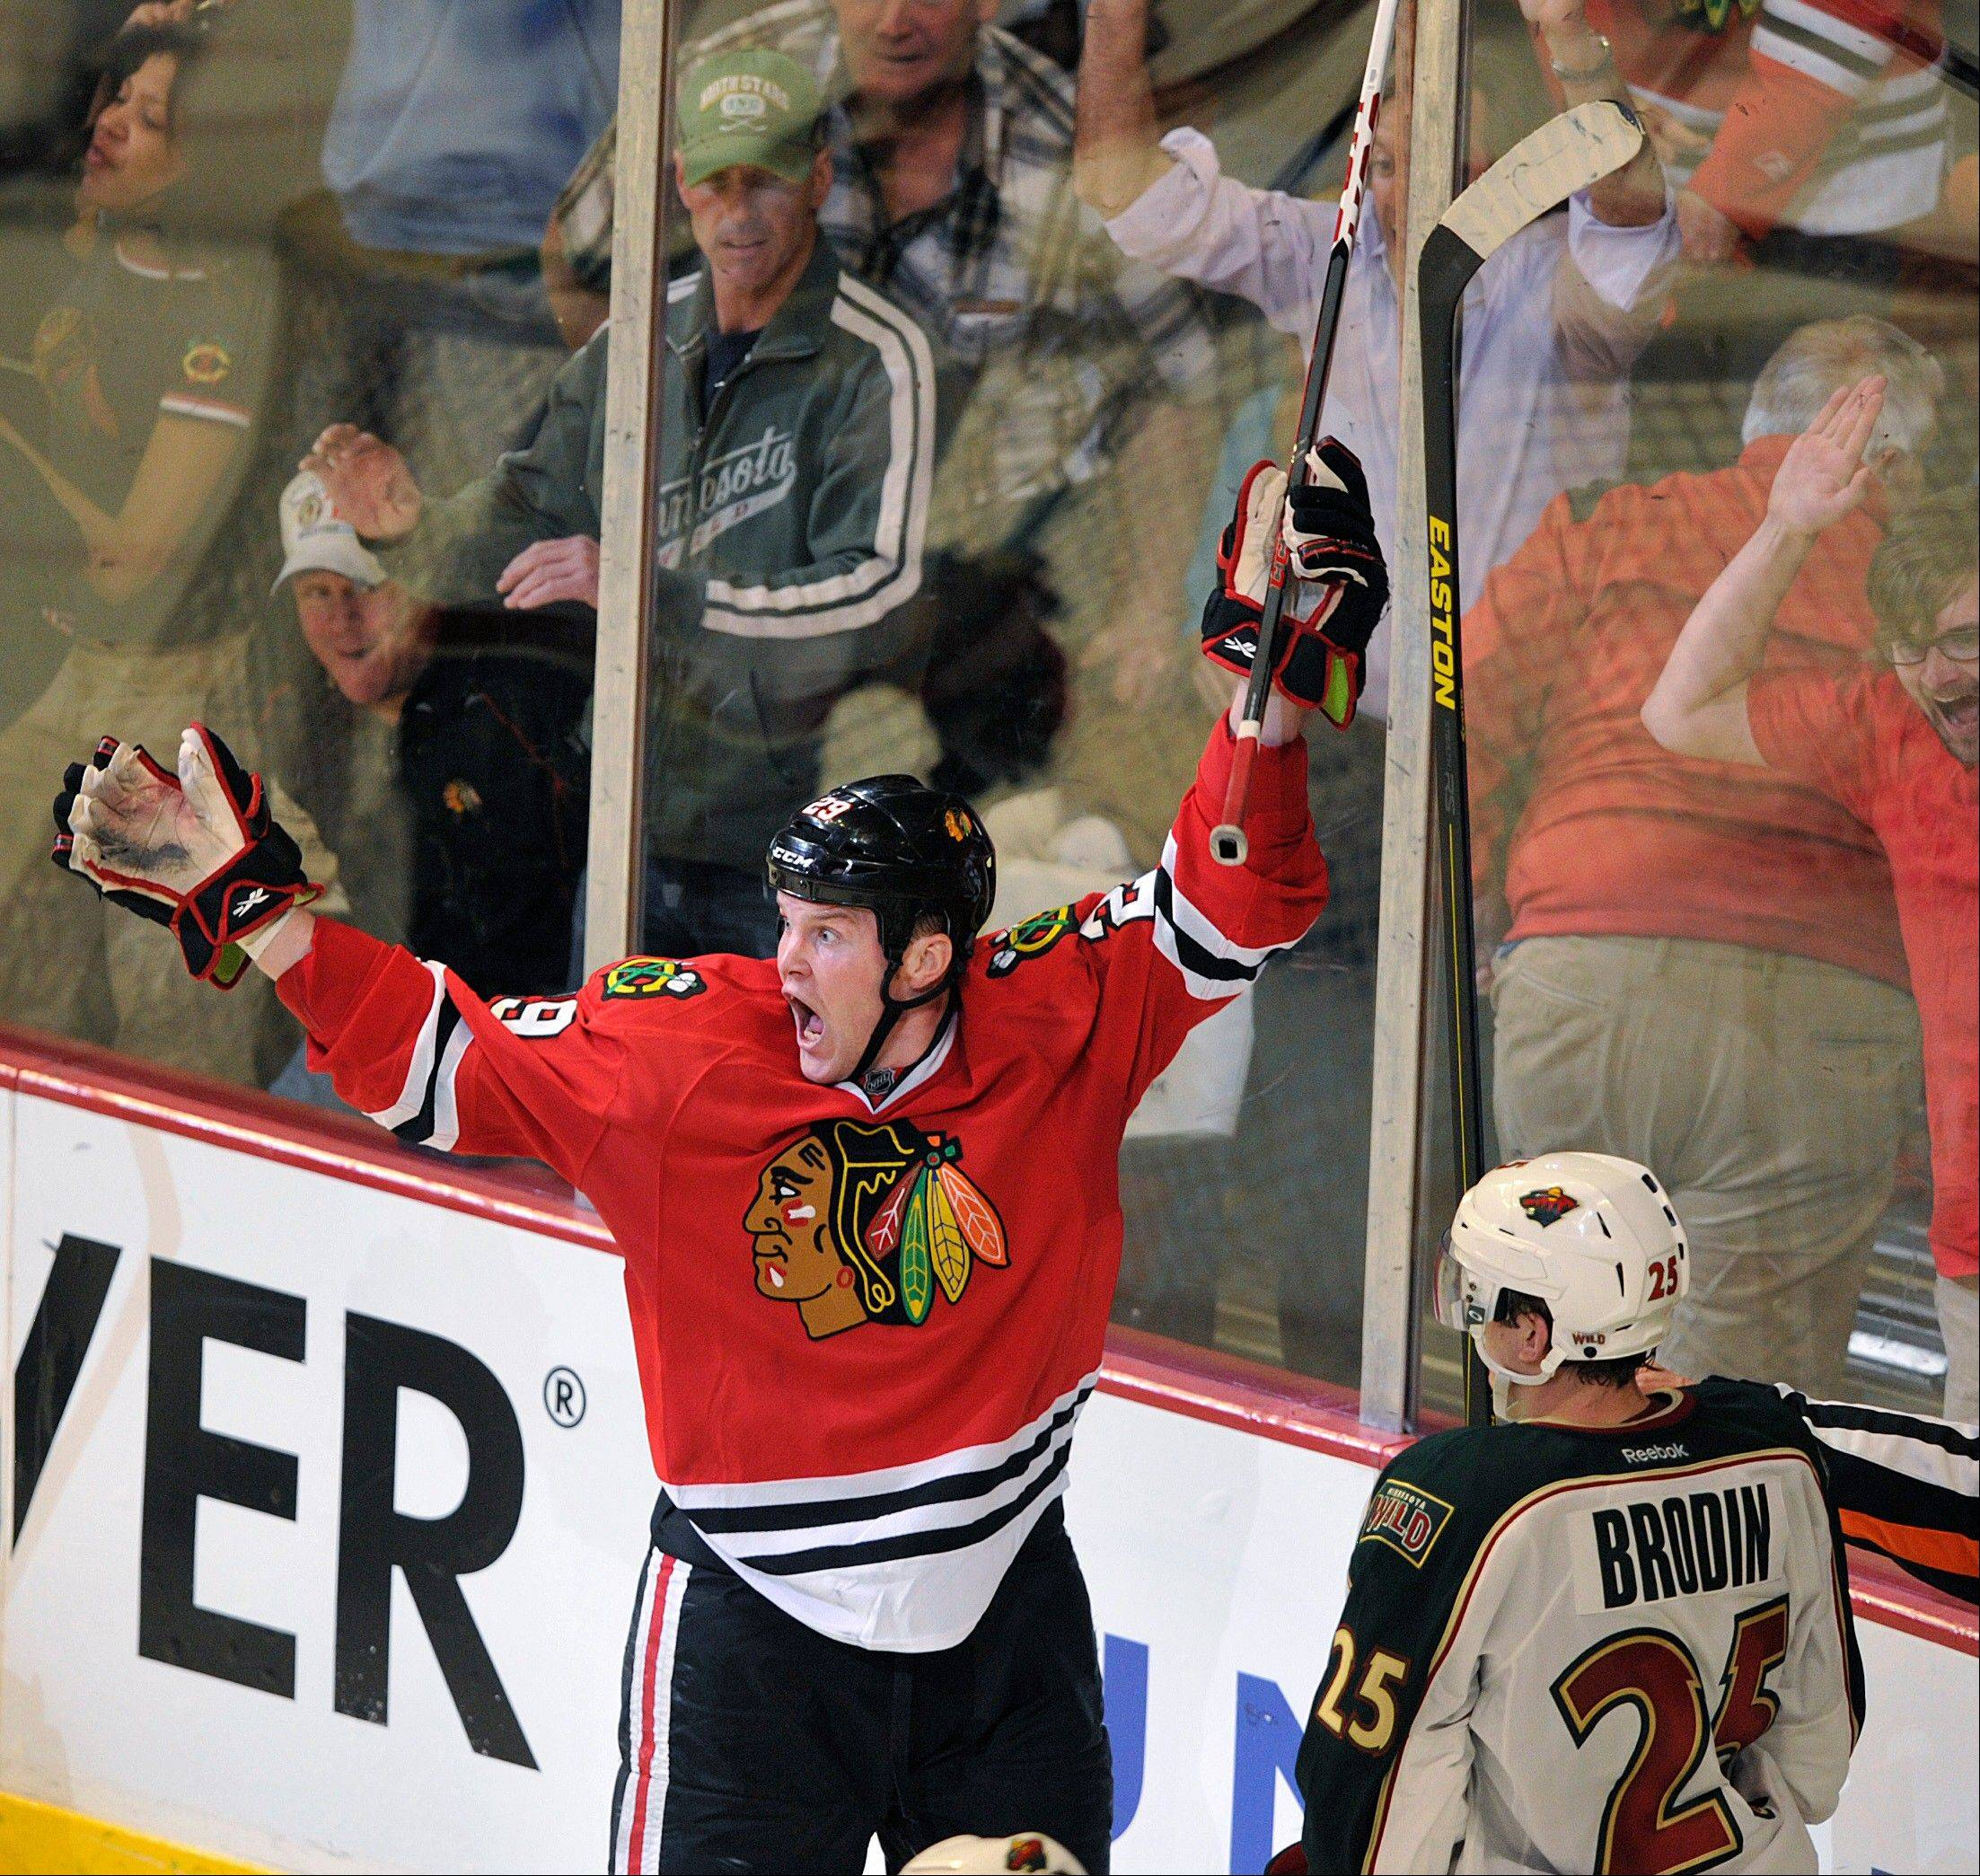 The Blackhawks' Bryan Bickell celebrates after scoring the game-winning goal in overtime of Game 1 against the Minnesota Wild on Tuesday at the United Center.